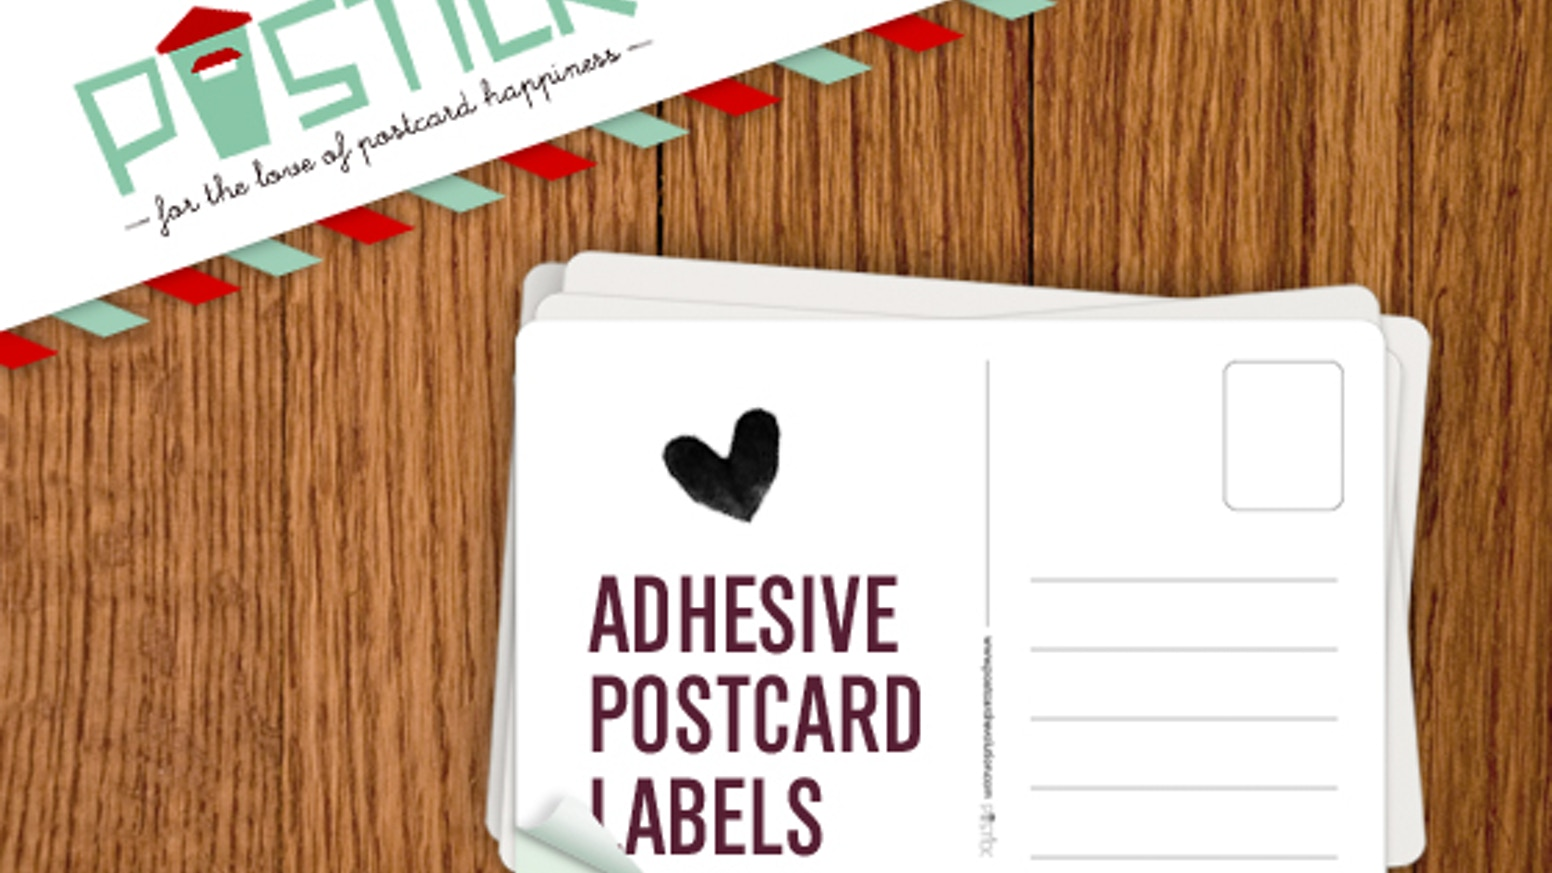 Self-adhesive postcard-back labels that transform photographs, drawings, notes, fabric and all kinds of things into real, physical postcards.